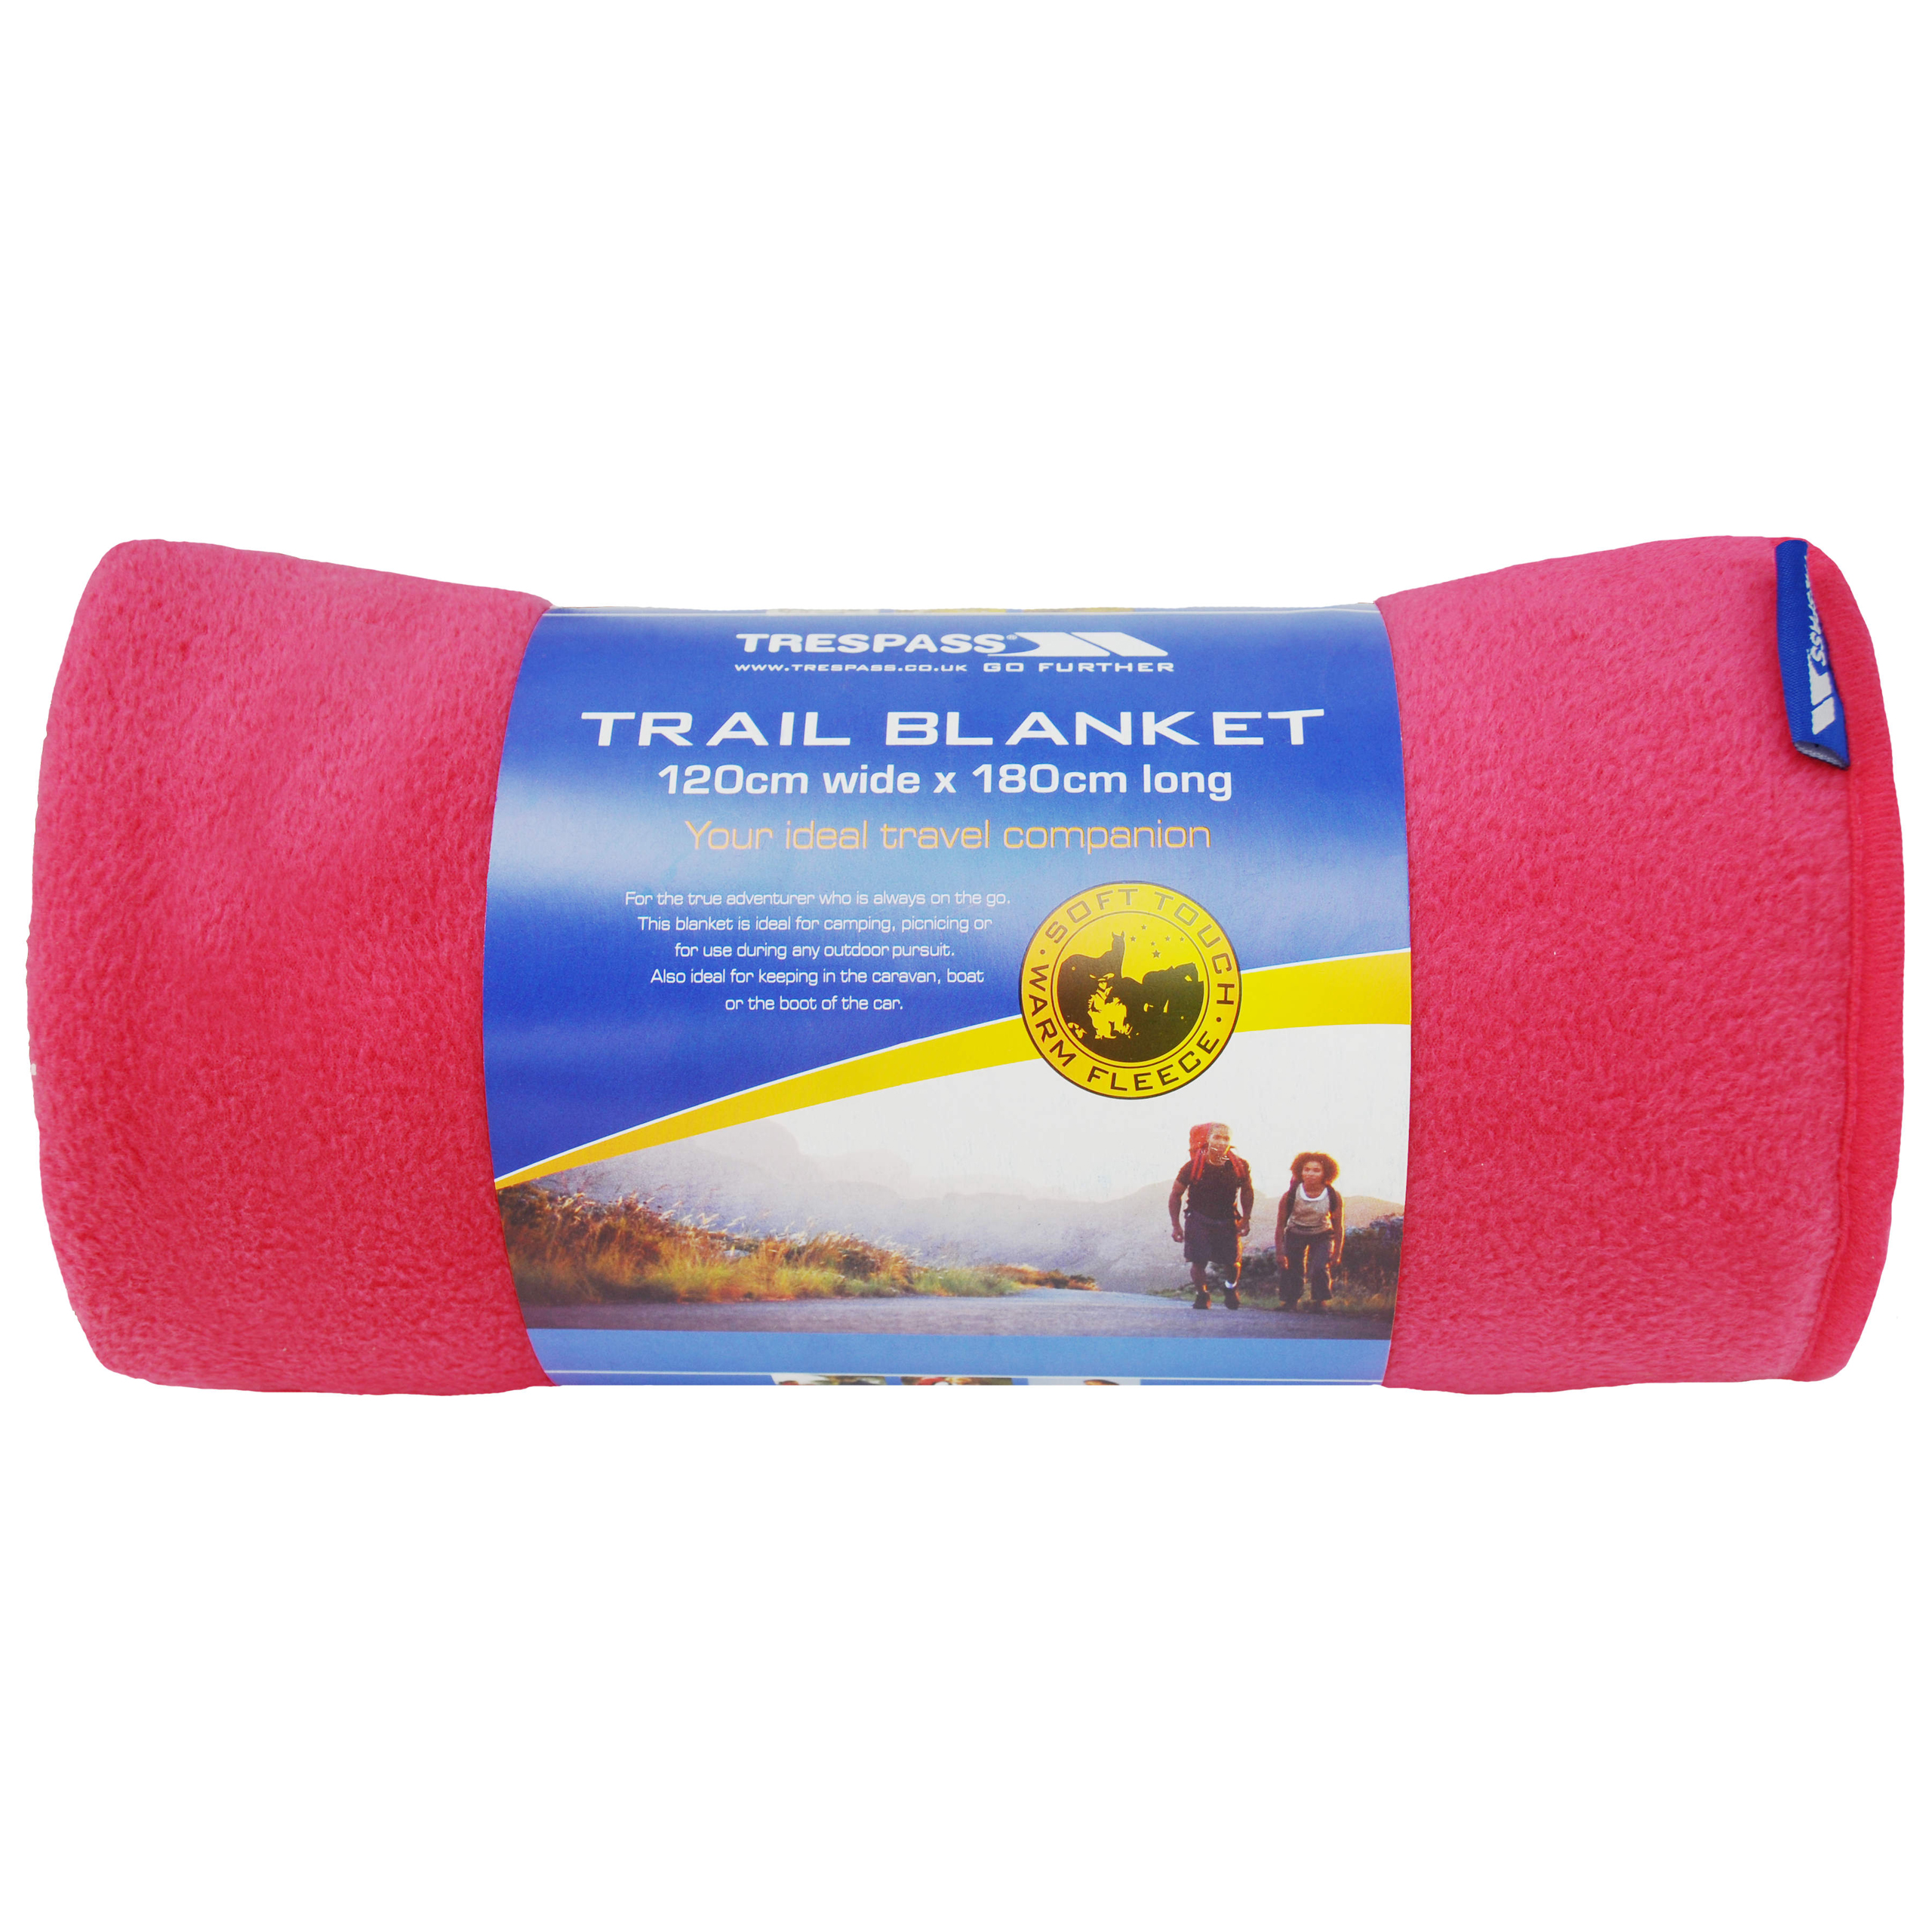 Trespass Snuggles Extra Large Microfleece Trail Blanket 120x180cm